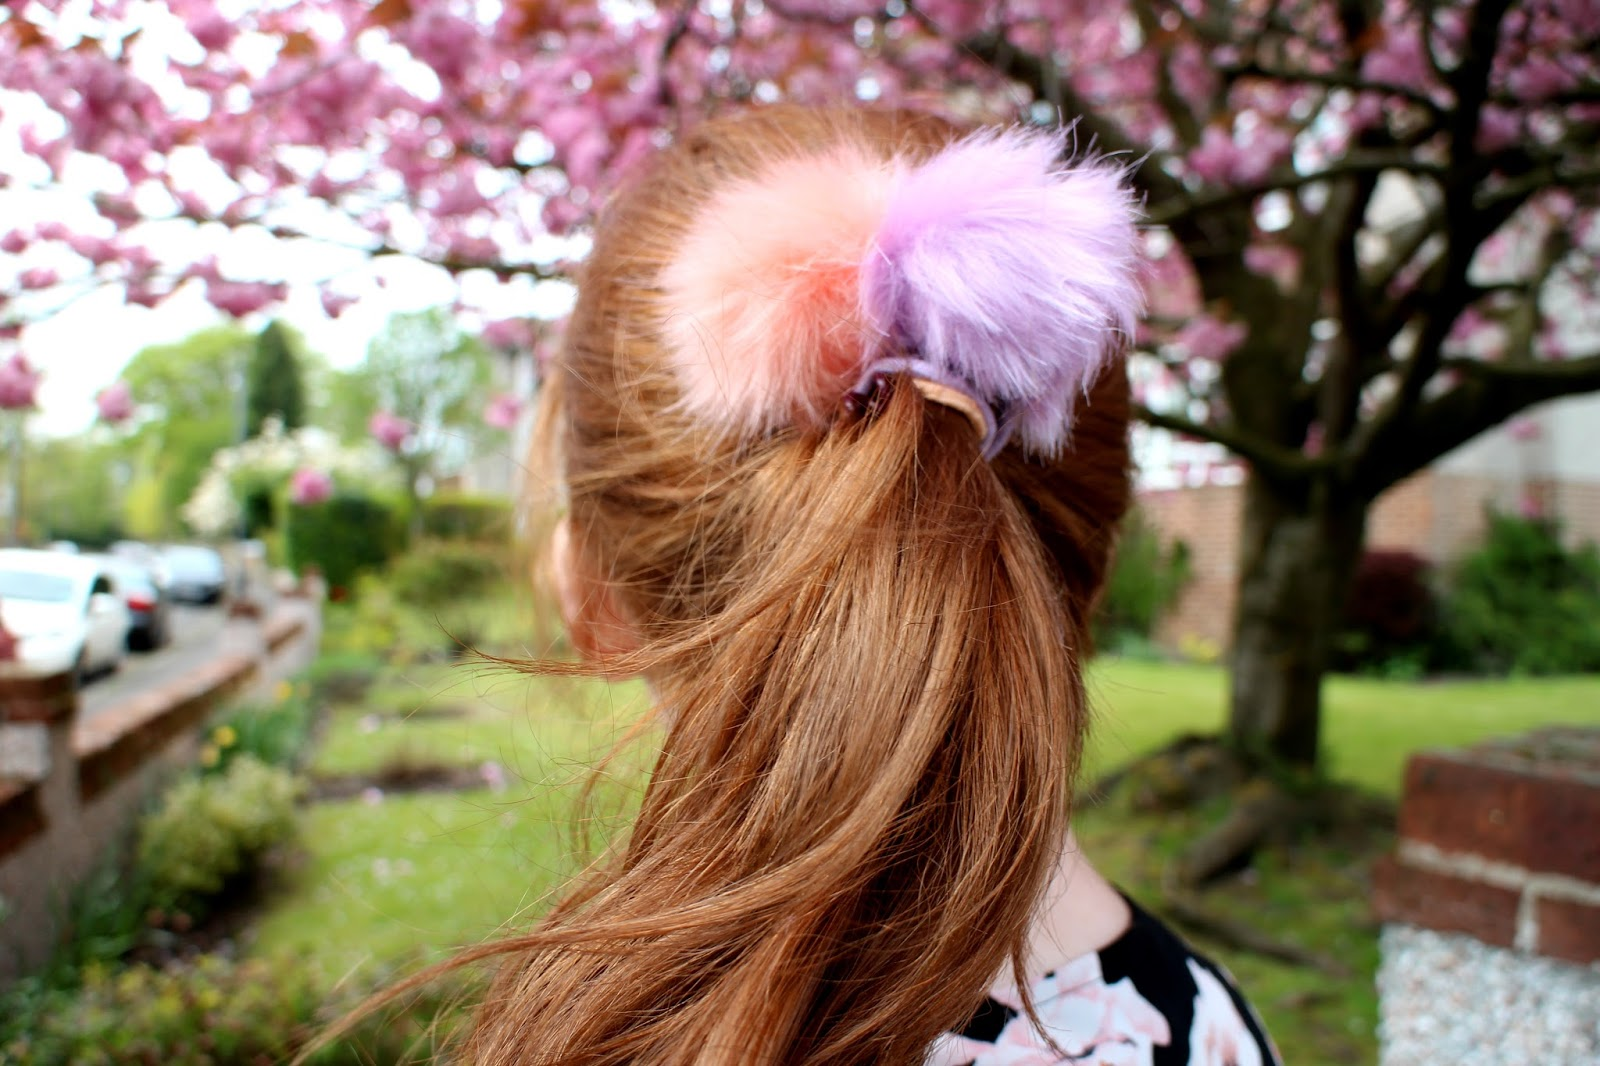 Pom pom hair bands